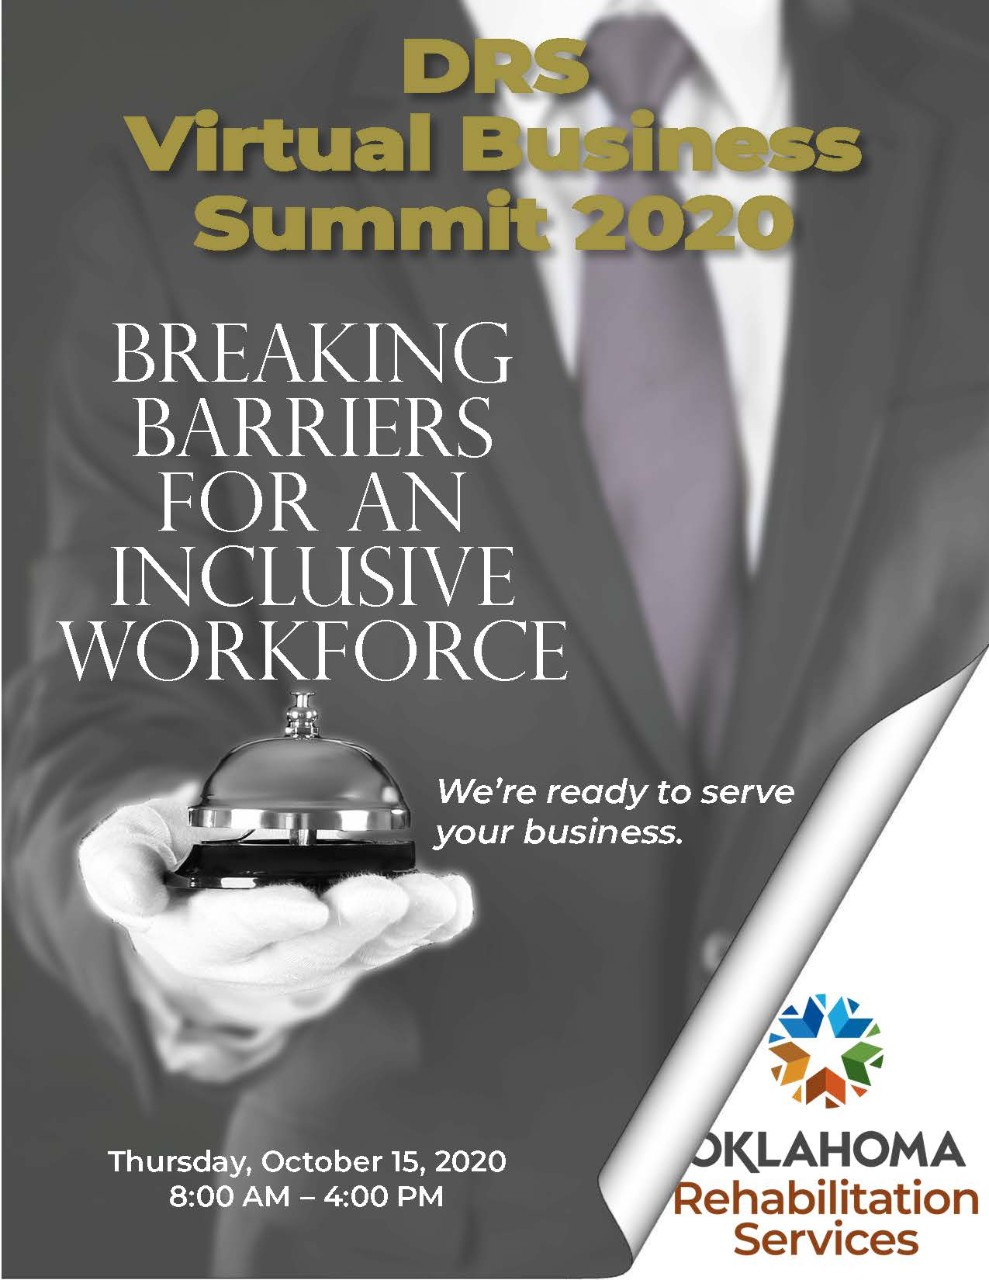 Virtual Business Summit 2020. Breaking Barriers for an inclusive workforce. We're ready to serve your business. Thursday, Oct. 15, 2020 8 am to 4 pm. A concierge in the background holding a service bell. DRS logo.